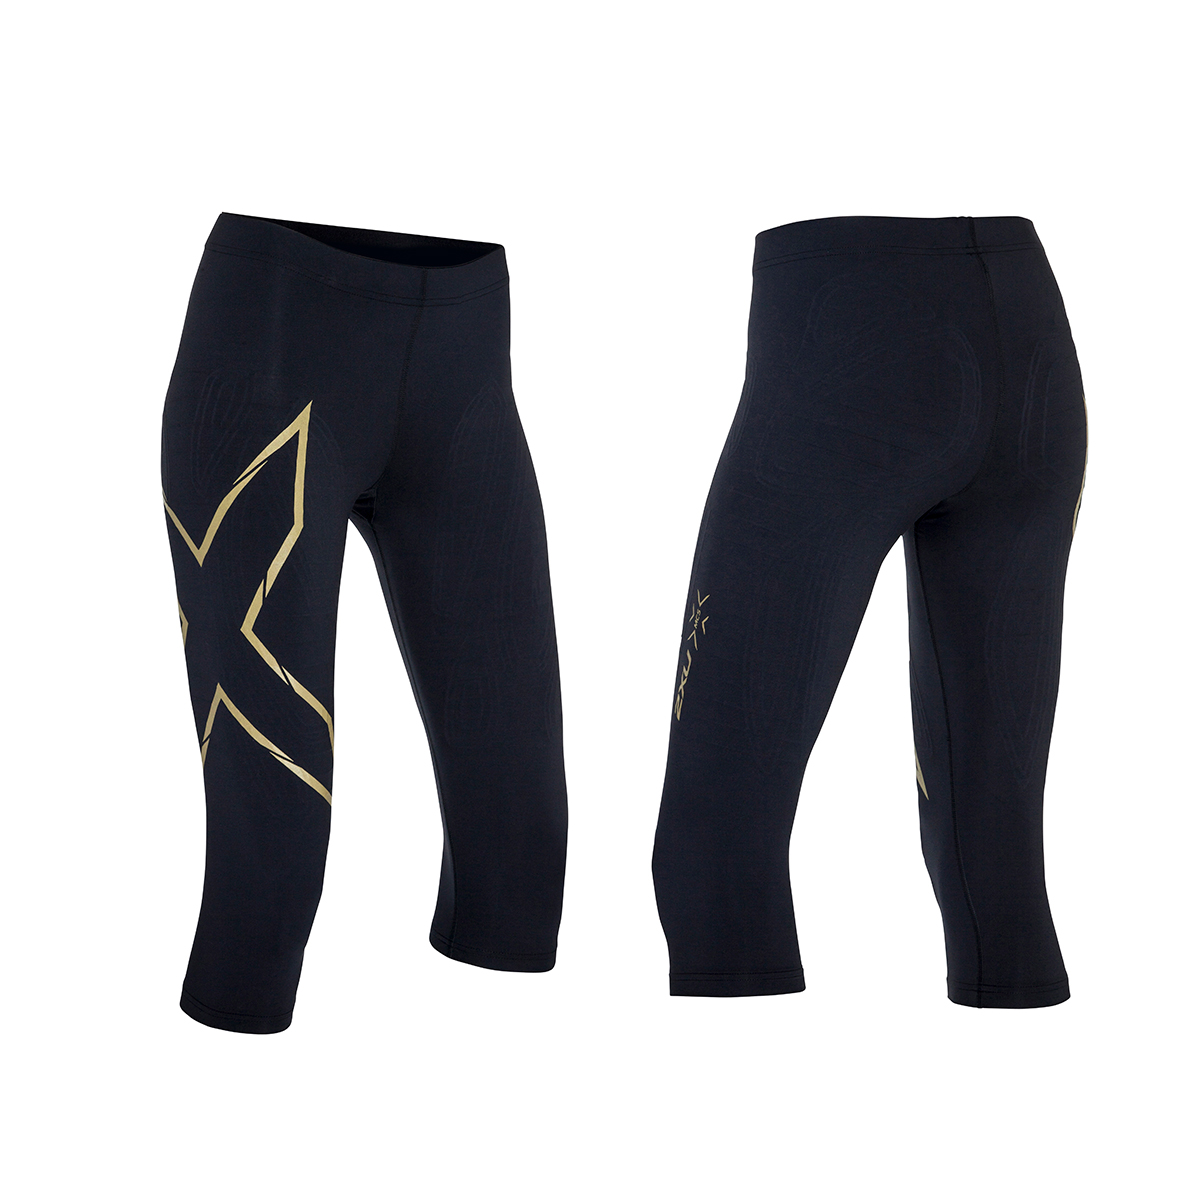 19deeab3af931 Details about 2XU Women's MCS Alpine Compression 3/4 Tights Black/Gold L